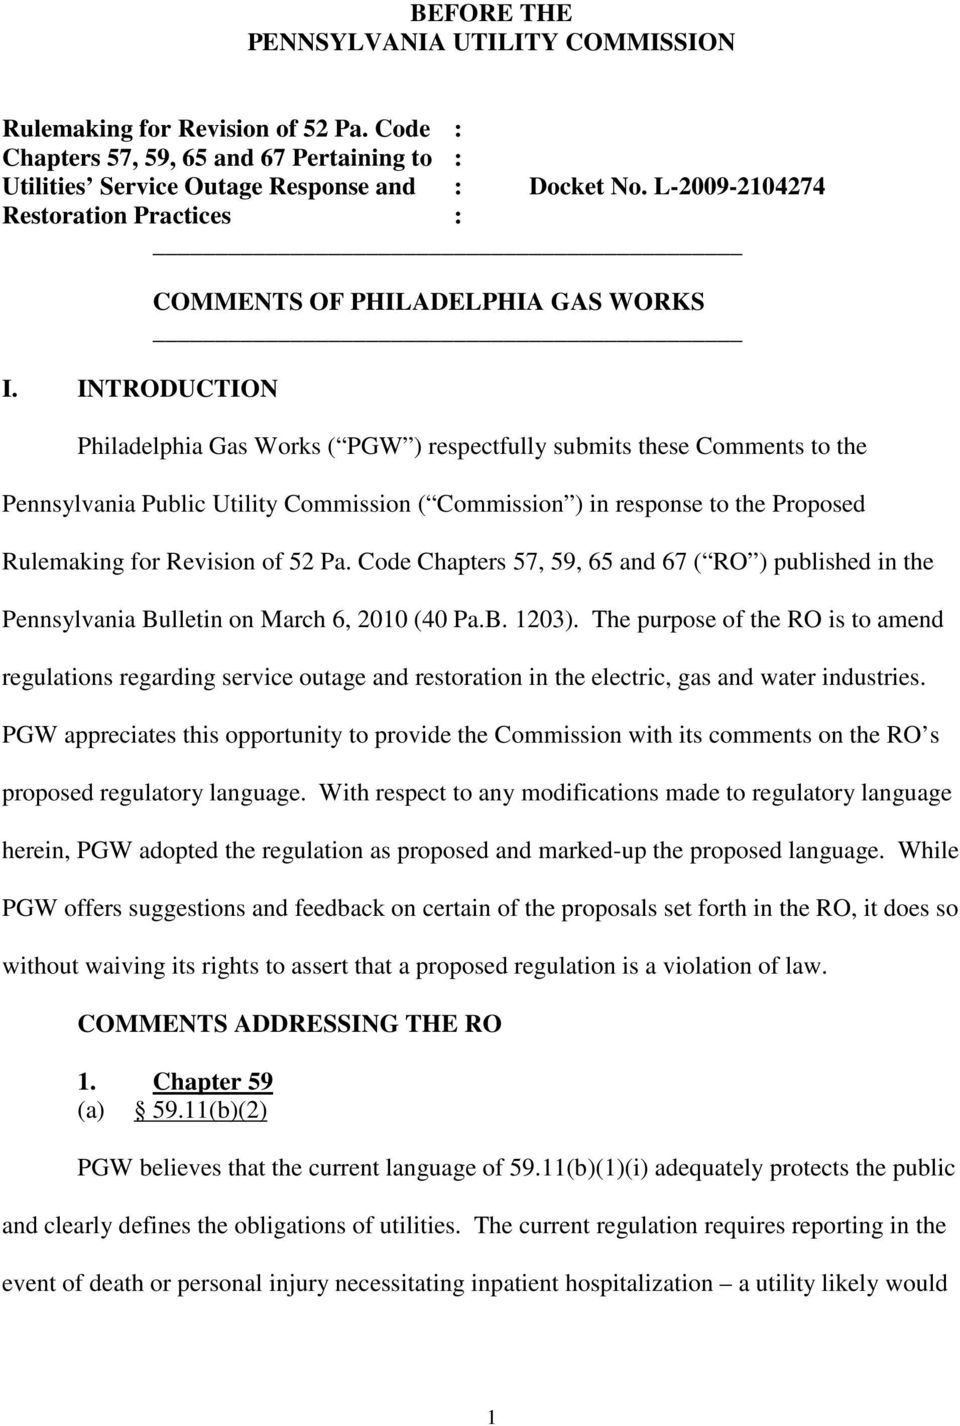 INTRODUCTION COMMENTS OF PHILADELPHIA GAS WORKS Philadelphia Gas Works ( PGW ) respectfully submits these Comments to the Pennsylvania Public Utility Commission ( Commission ) in response to the